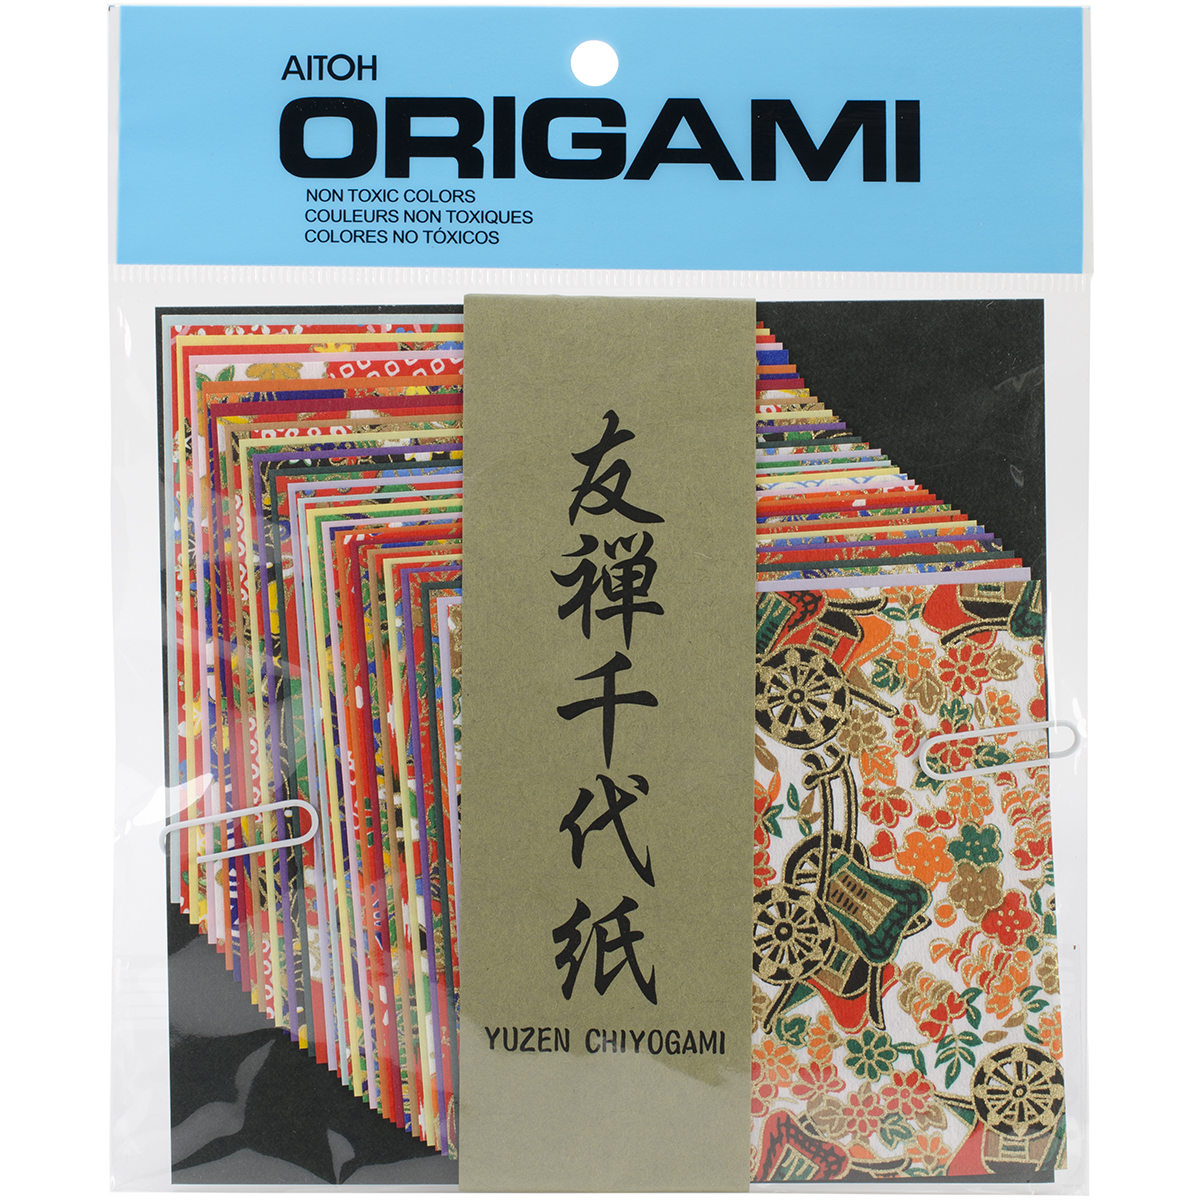 Aitoh Yuzen Washi Chiyogami Origami Paper, 4 by 4-Inch, 40-Pack Multi-Colored